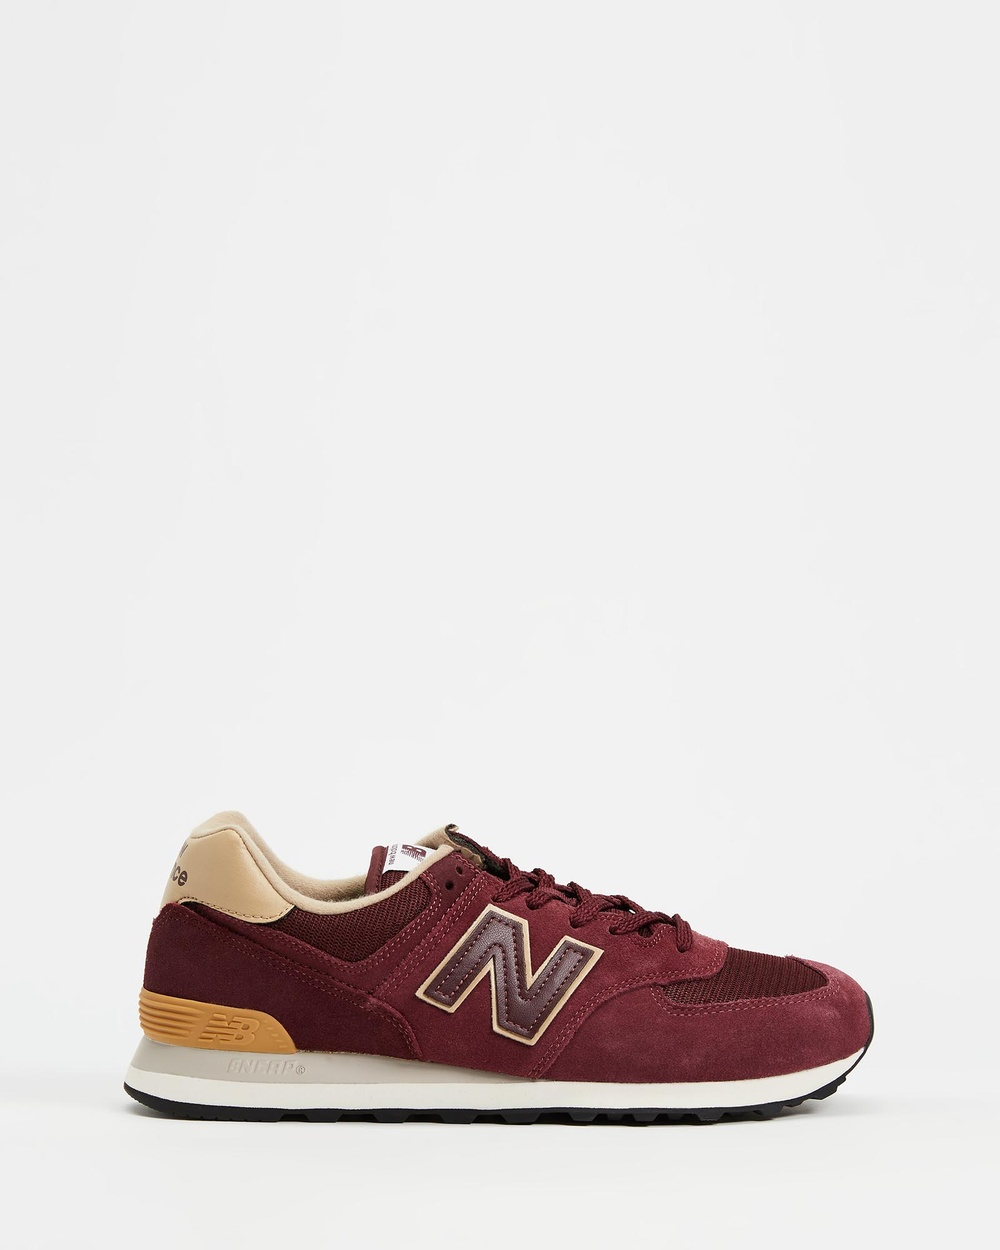 New Balance 574 Standard Fit Men's Lifestyle Sneakers Burgundy